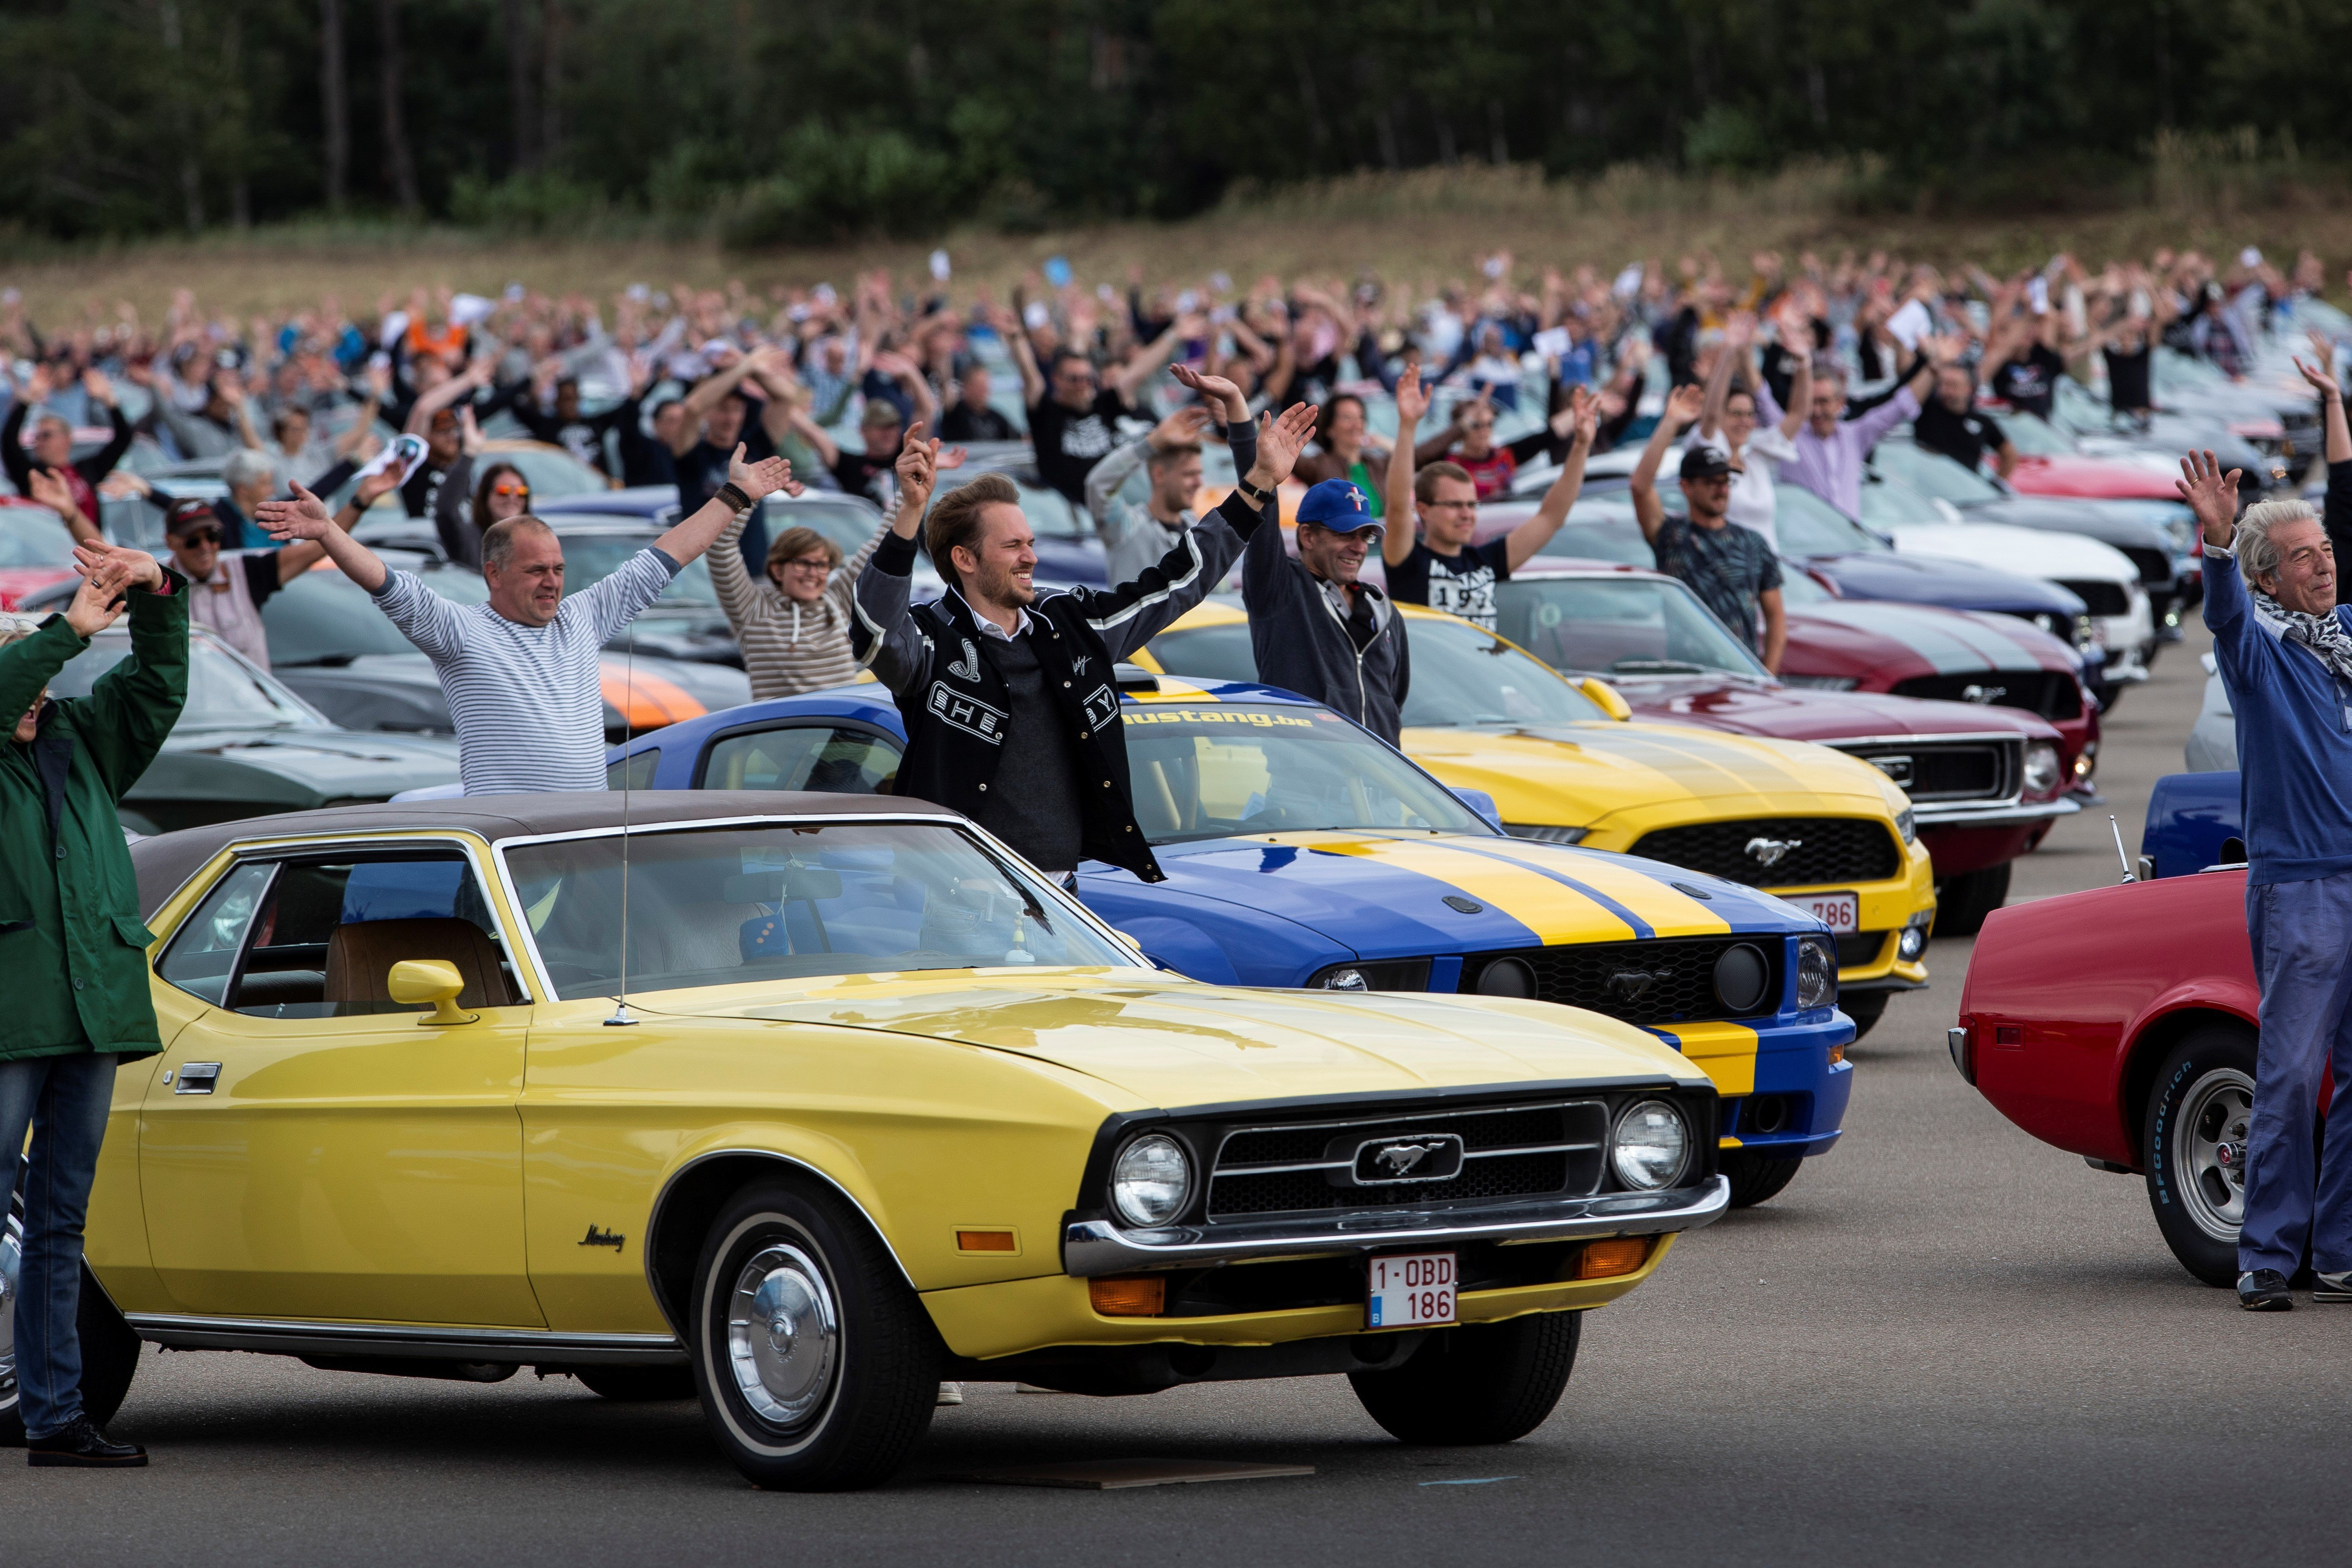 New Record For Biggest Mustang Gathering Set…In Belgium